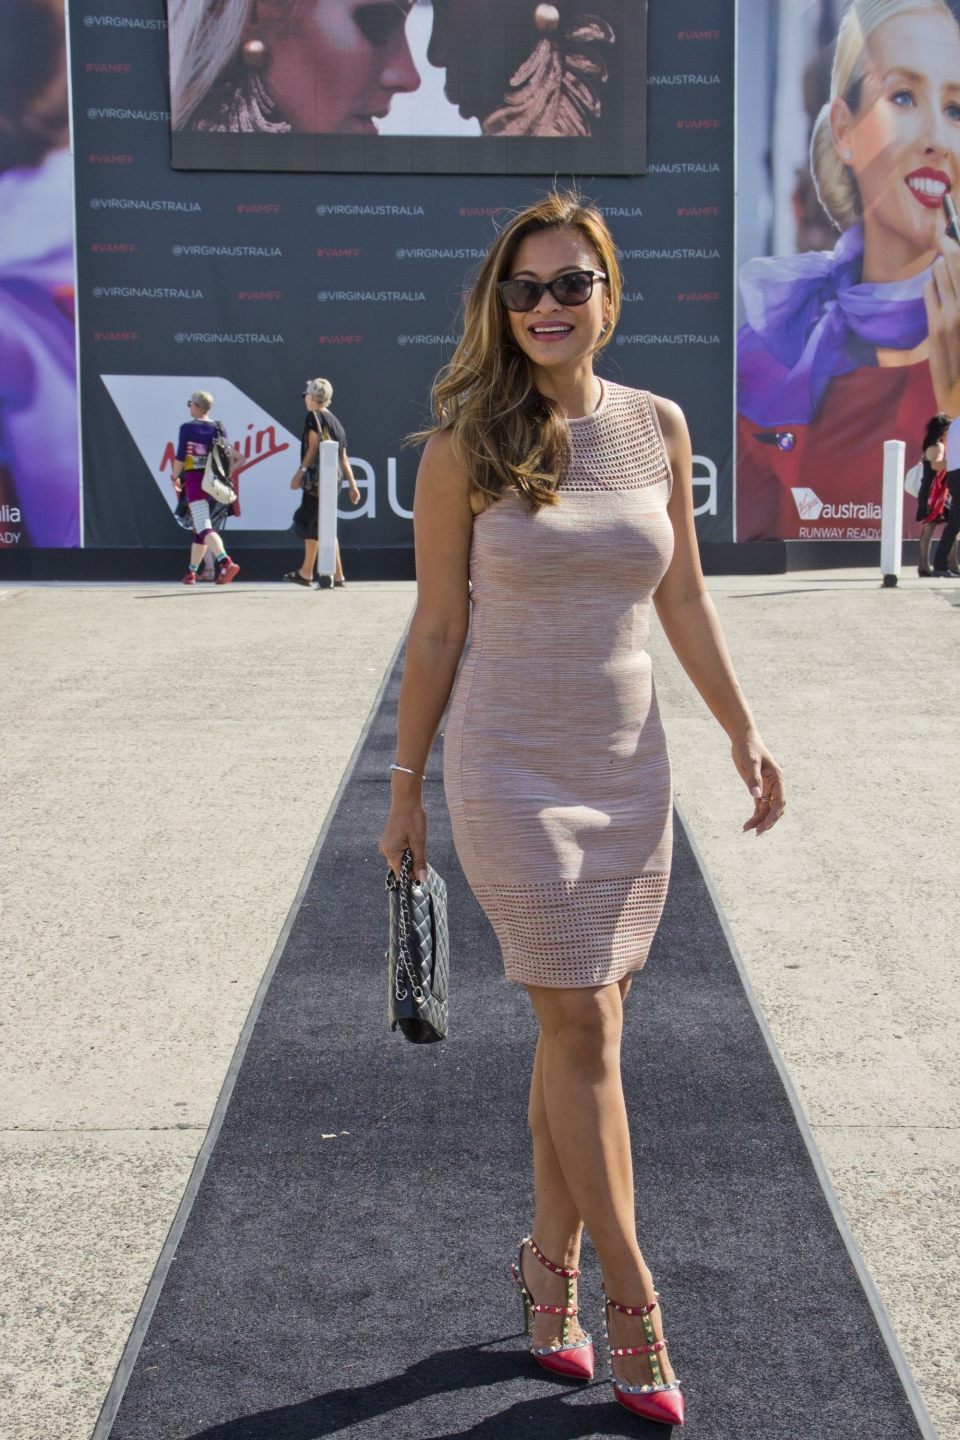 Vic: Tiur Bouchaud, fashion designer, at the Virgin Australia Melbourne Fashion Festival Docklands. Photo: Les Brown.